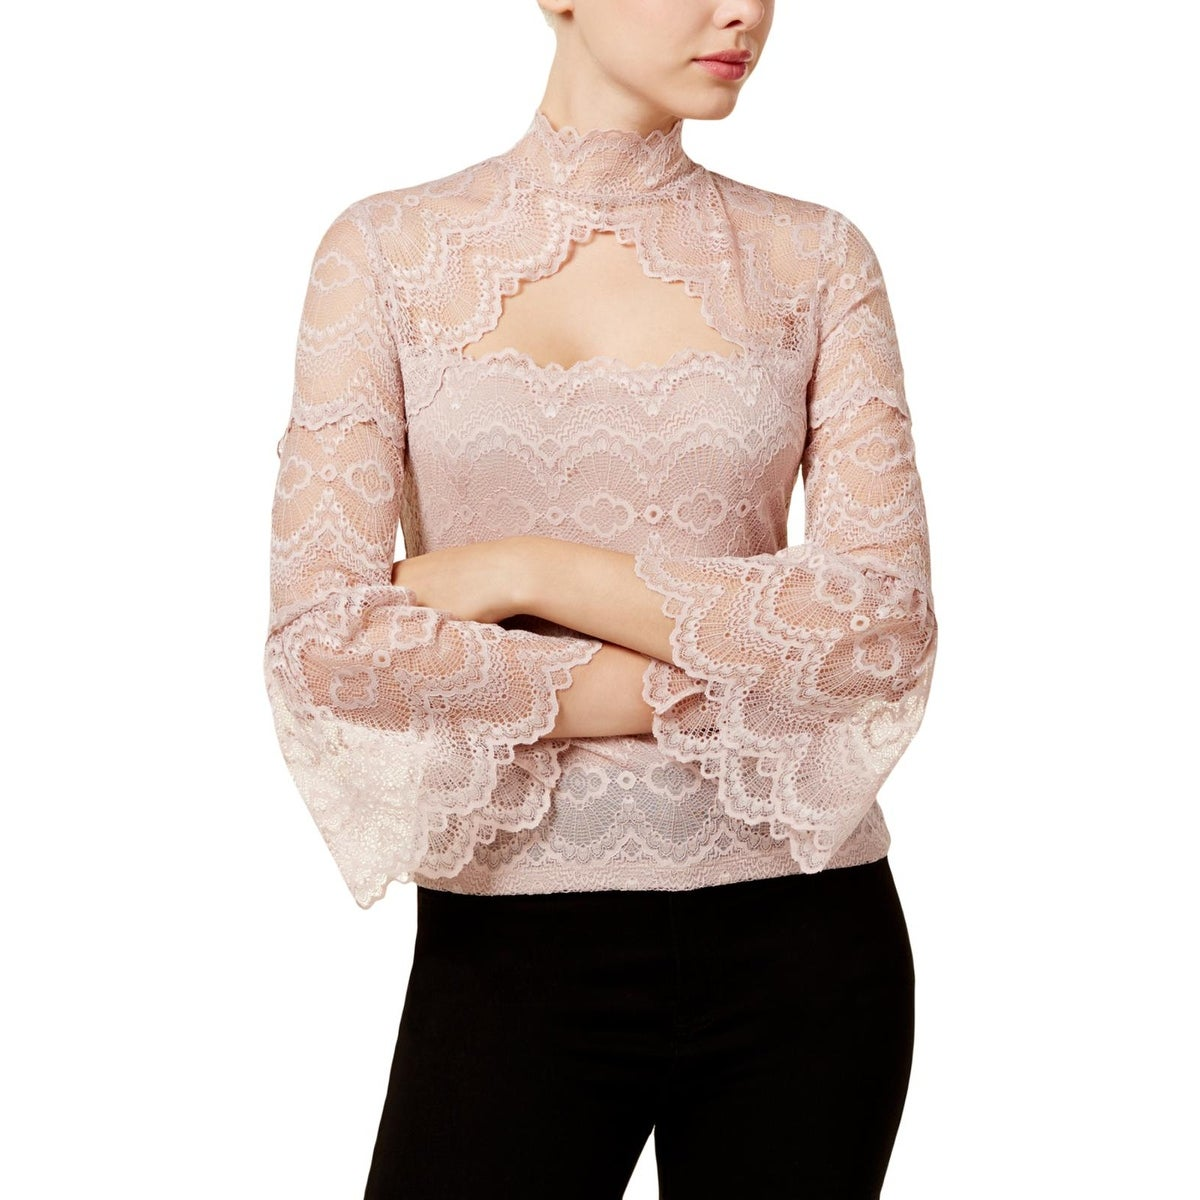 336effcb11d Guess Tops | Find Great Women's Clothing Deals Shopping at Overstock